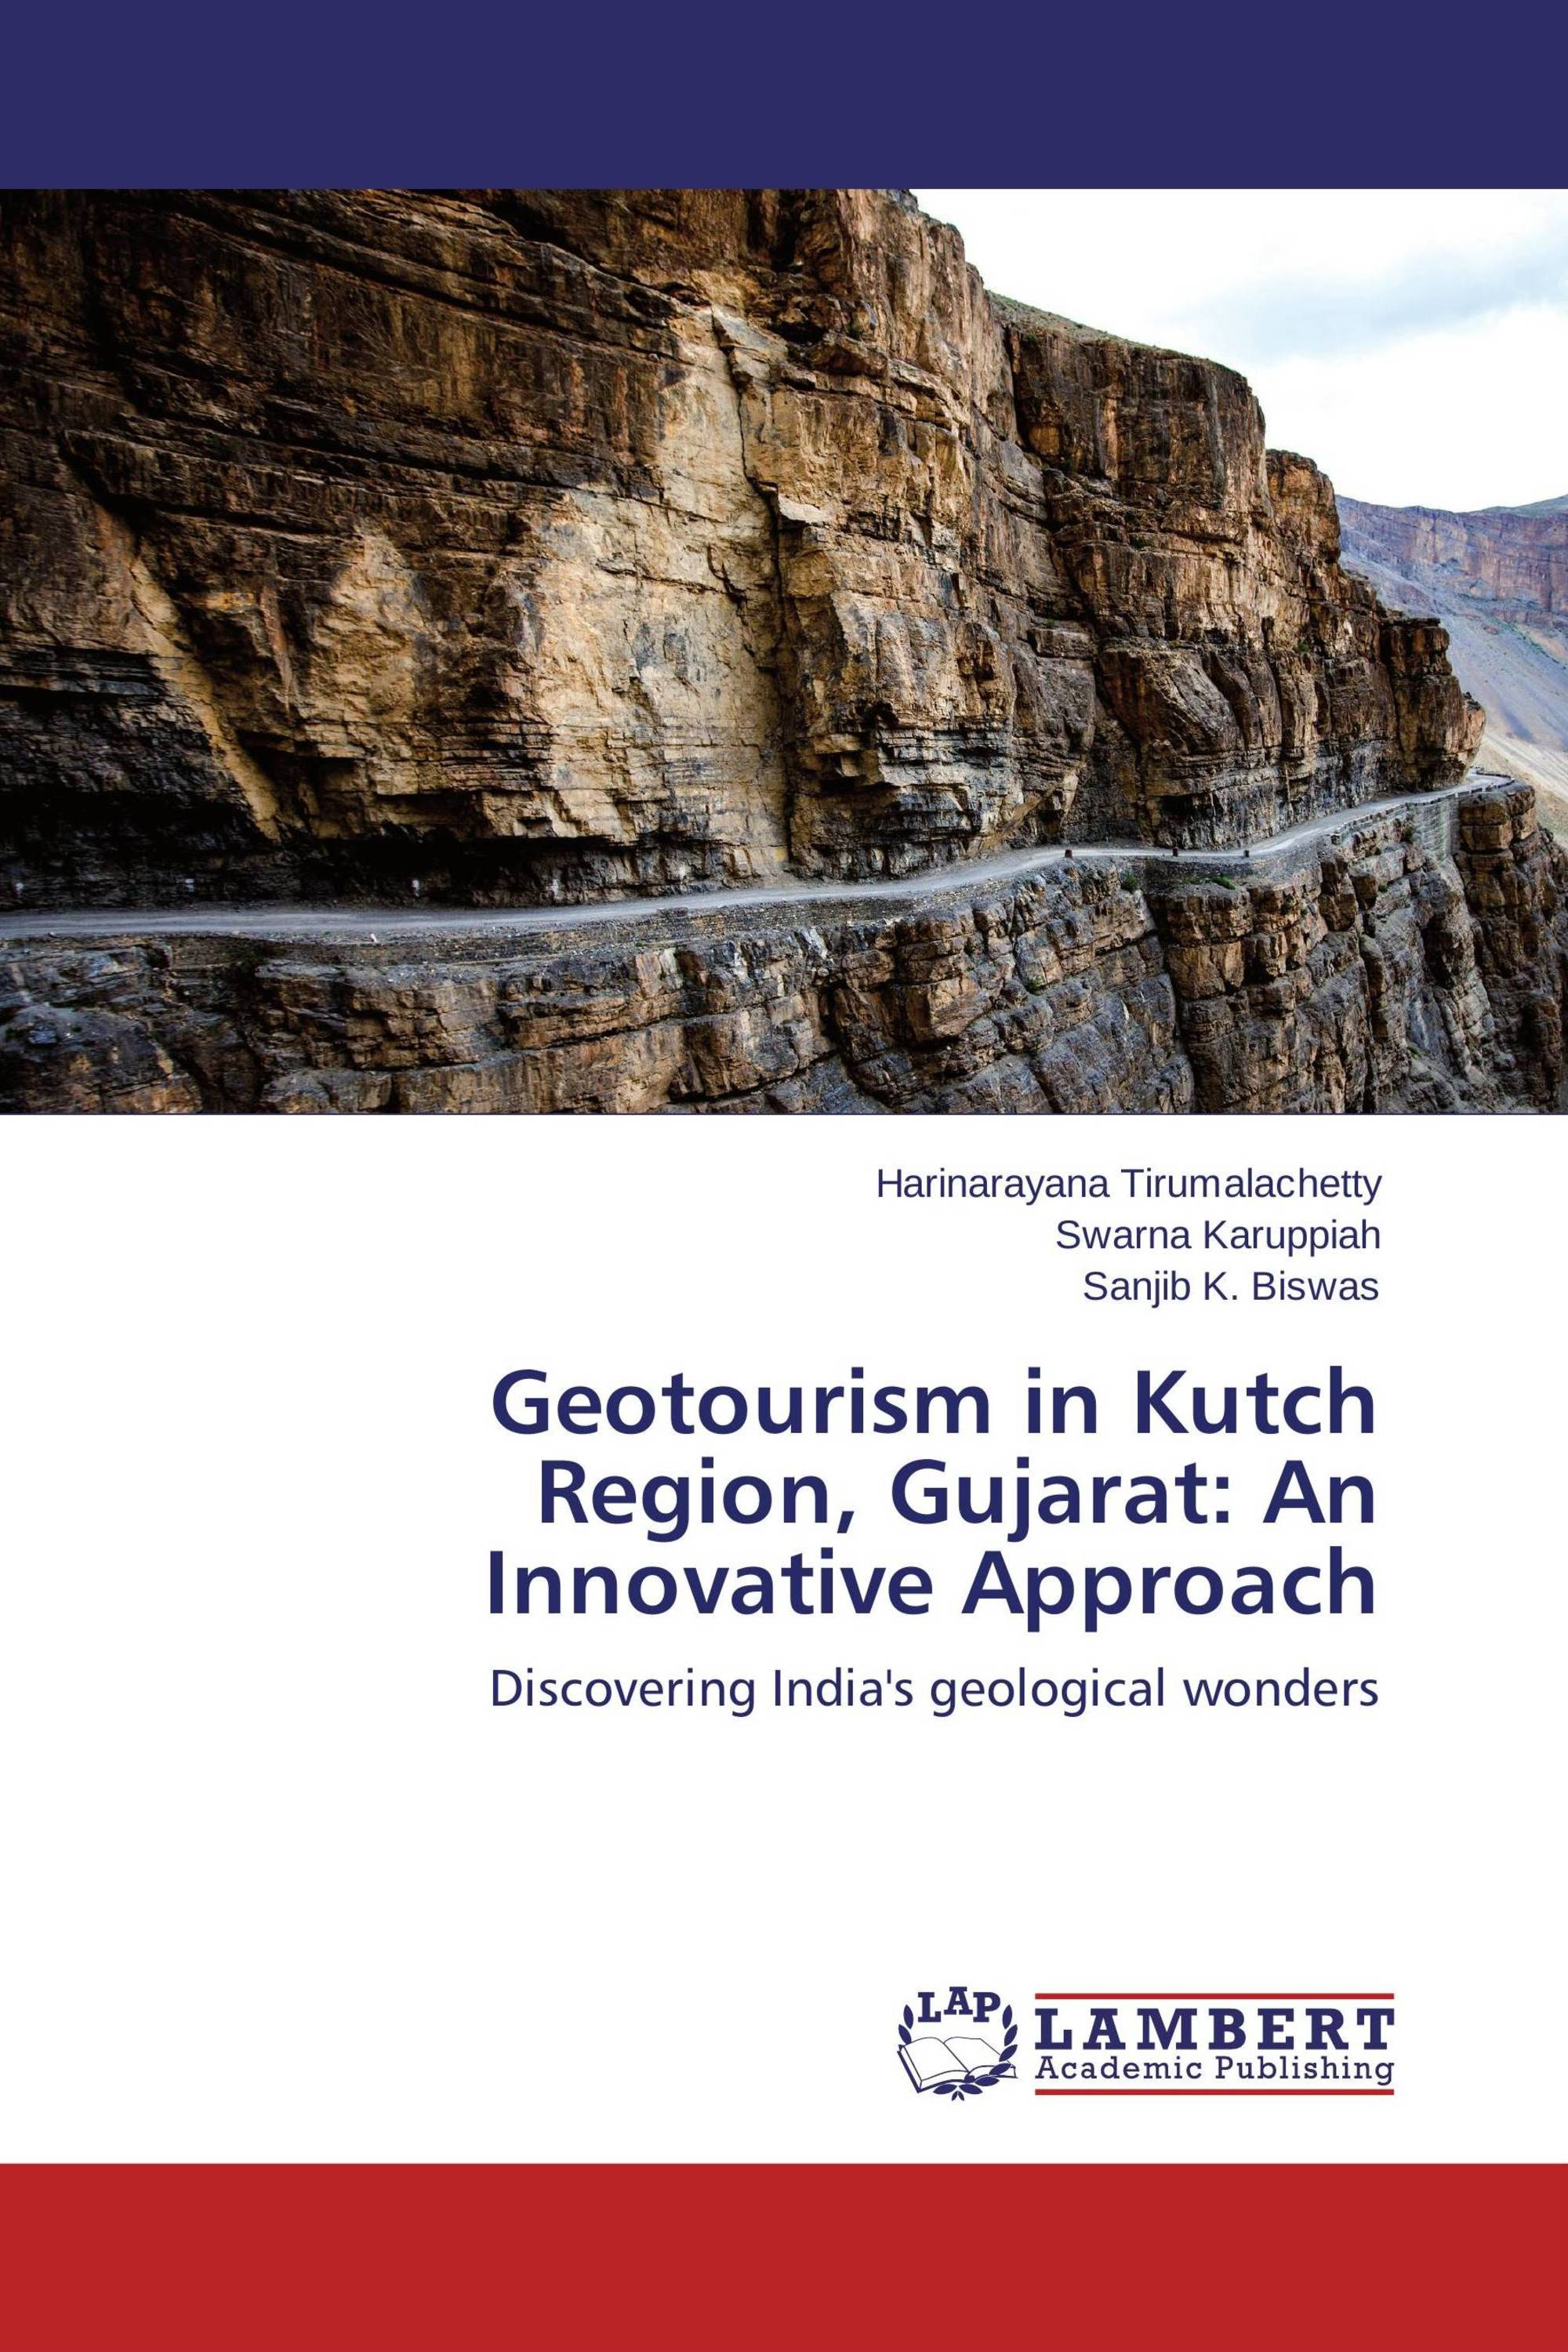 Geotourism in Kutch Region, Gujarat: An Innovative Approach